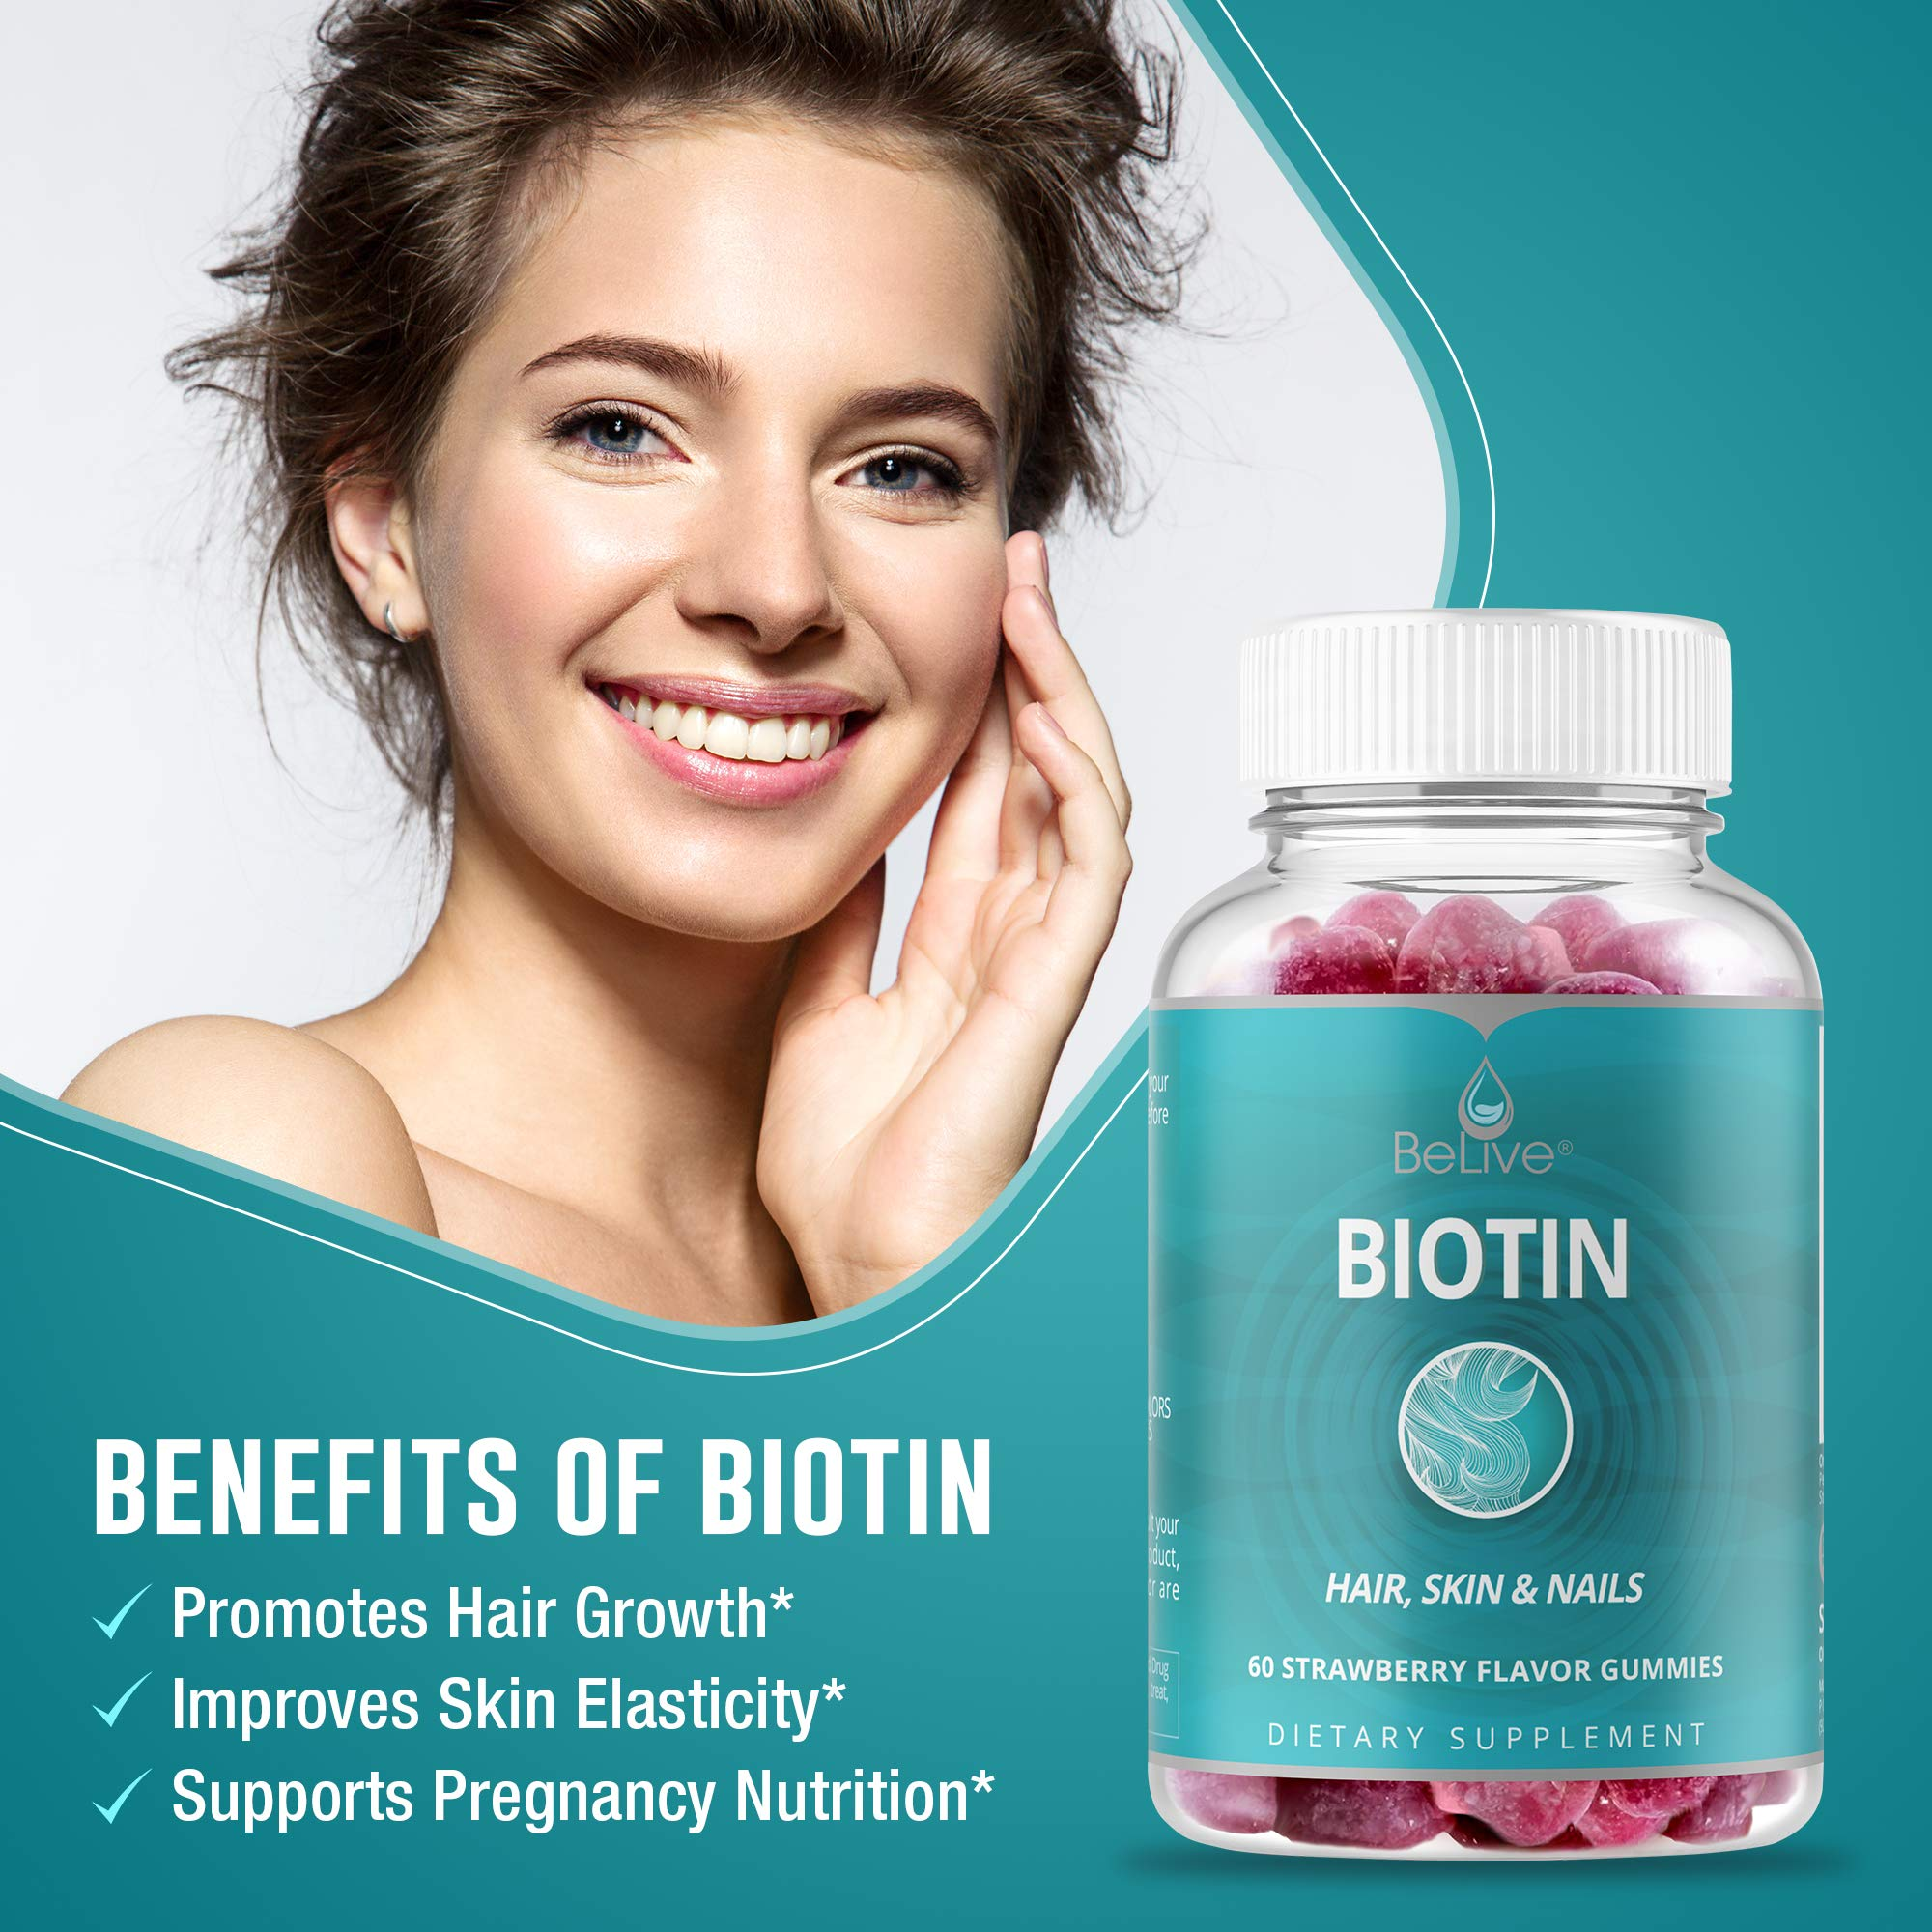 BeLive Biotin Gummies for Hair Growth, Promotes Healthier Hair, Skin & Nail - Best Strength 10,000mcg for Women & Men, 80 Count